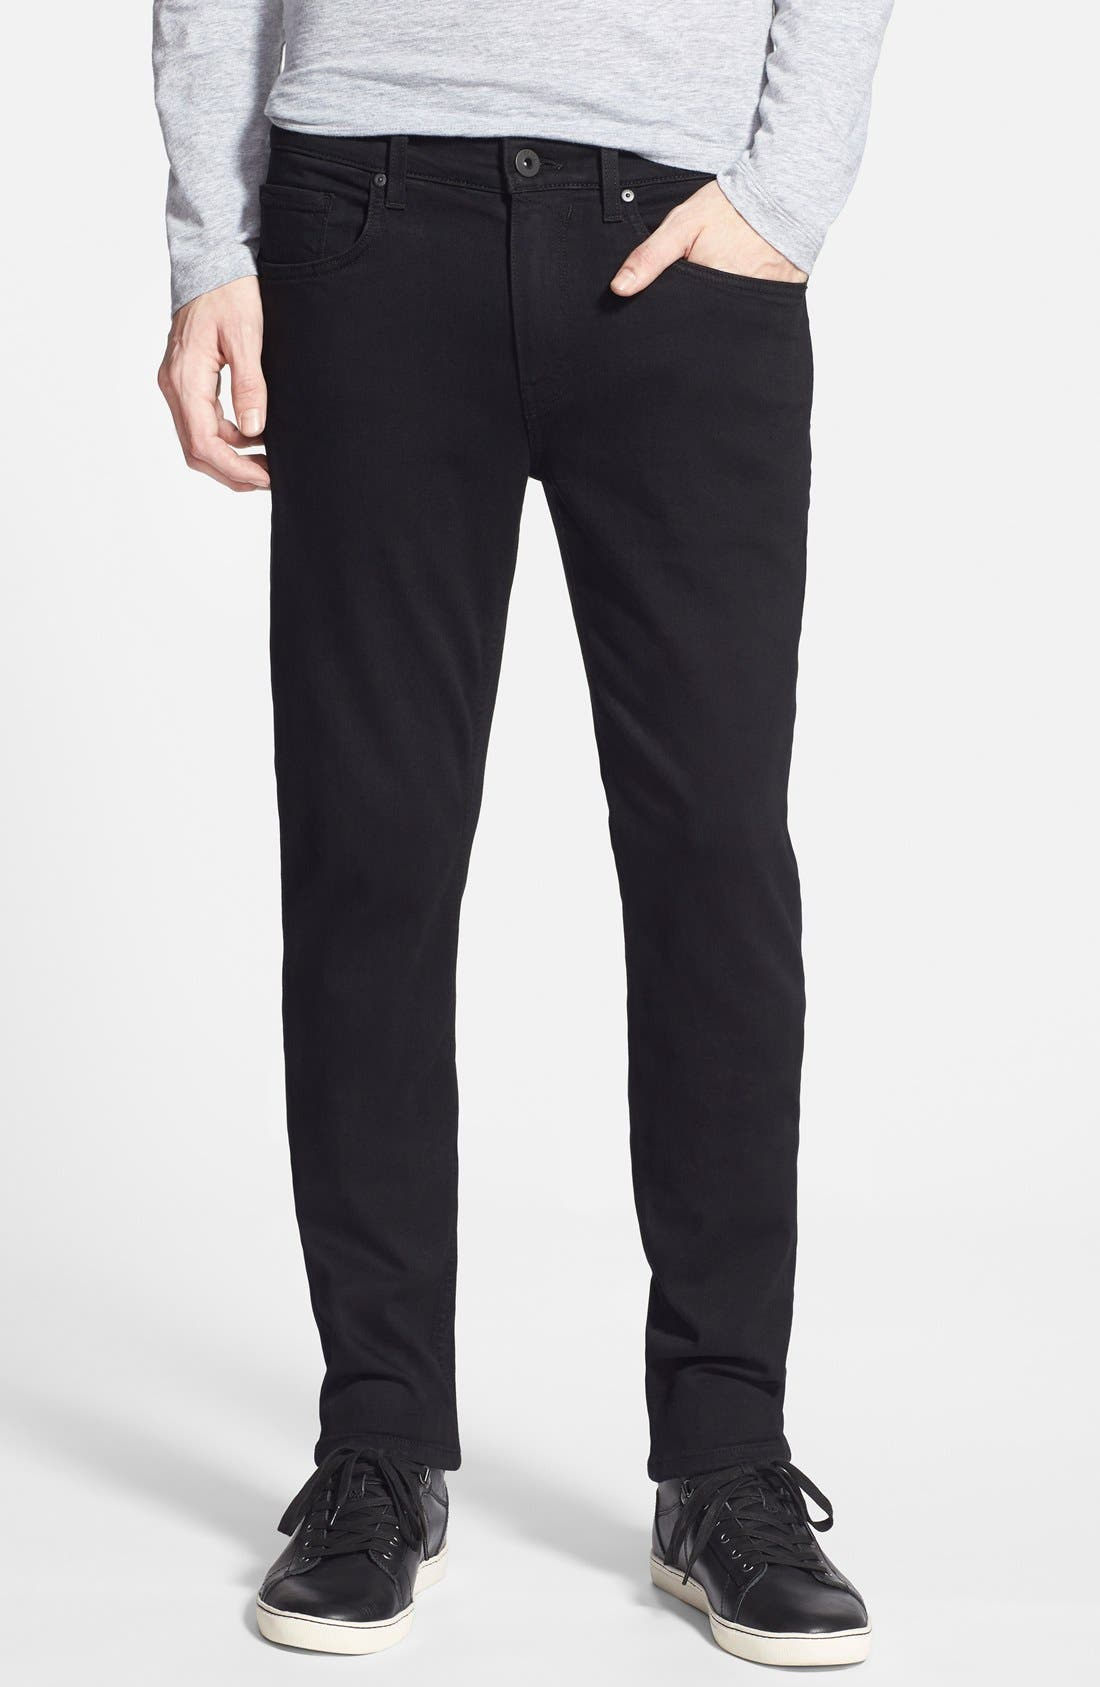 Transcend – Lennox Slim Fit Jeans, Main, color, BLACK SHADOW